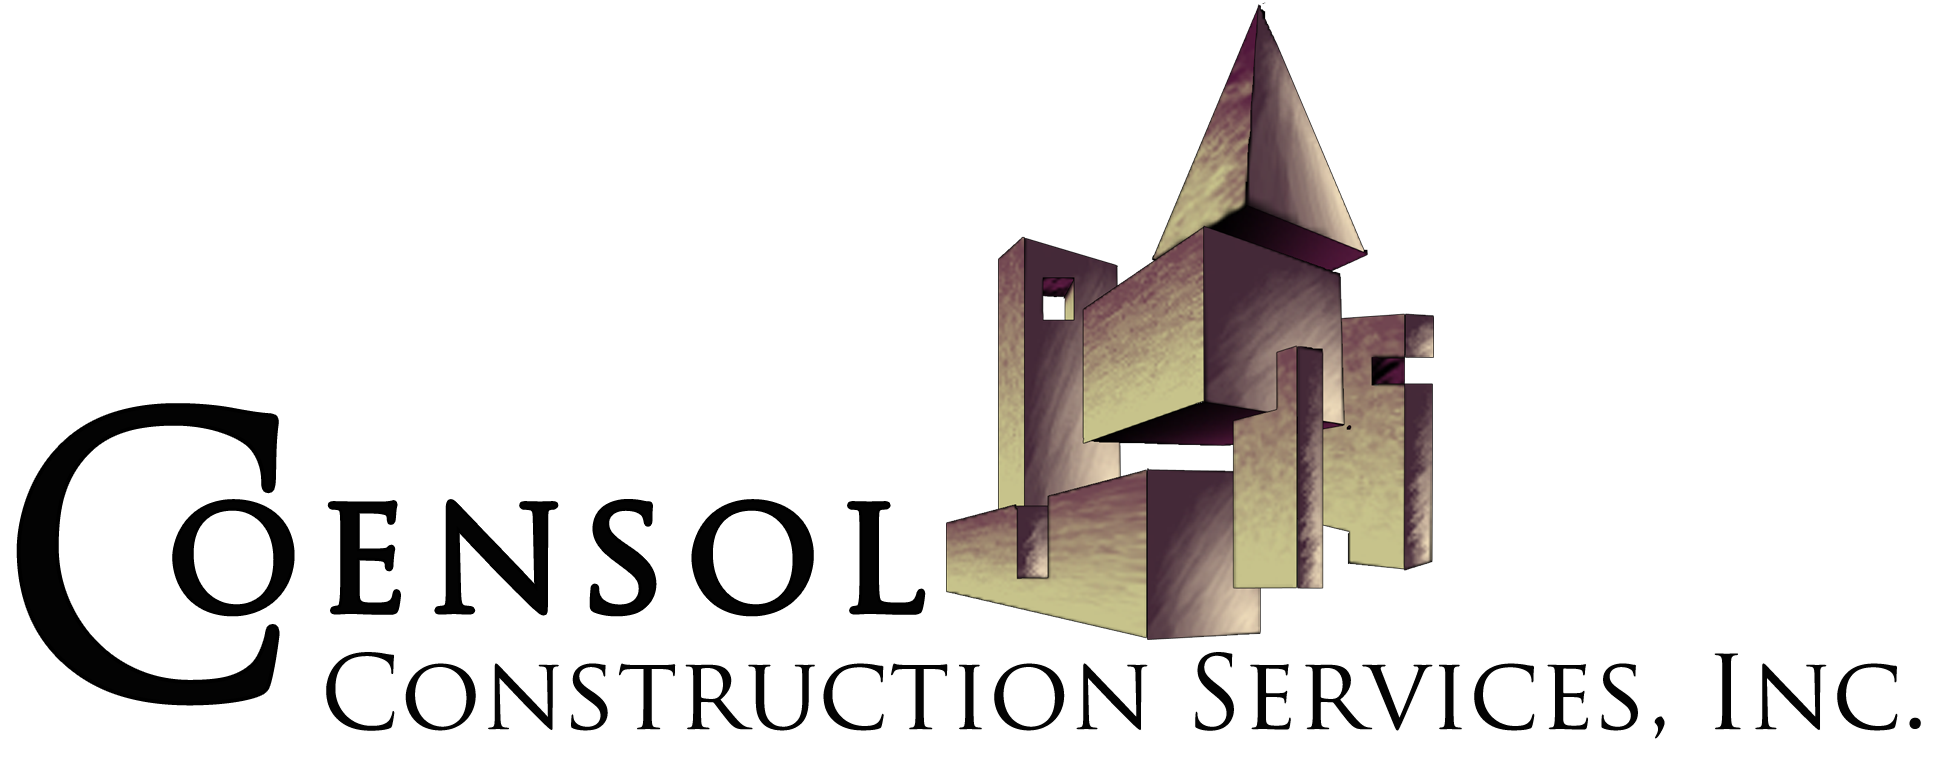 Builder directory for state nc direct from the designers coensol construction services john coensol malvernweather Images